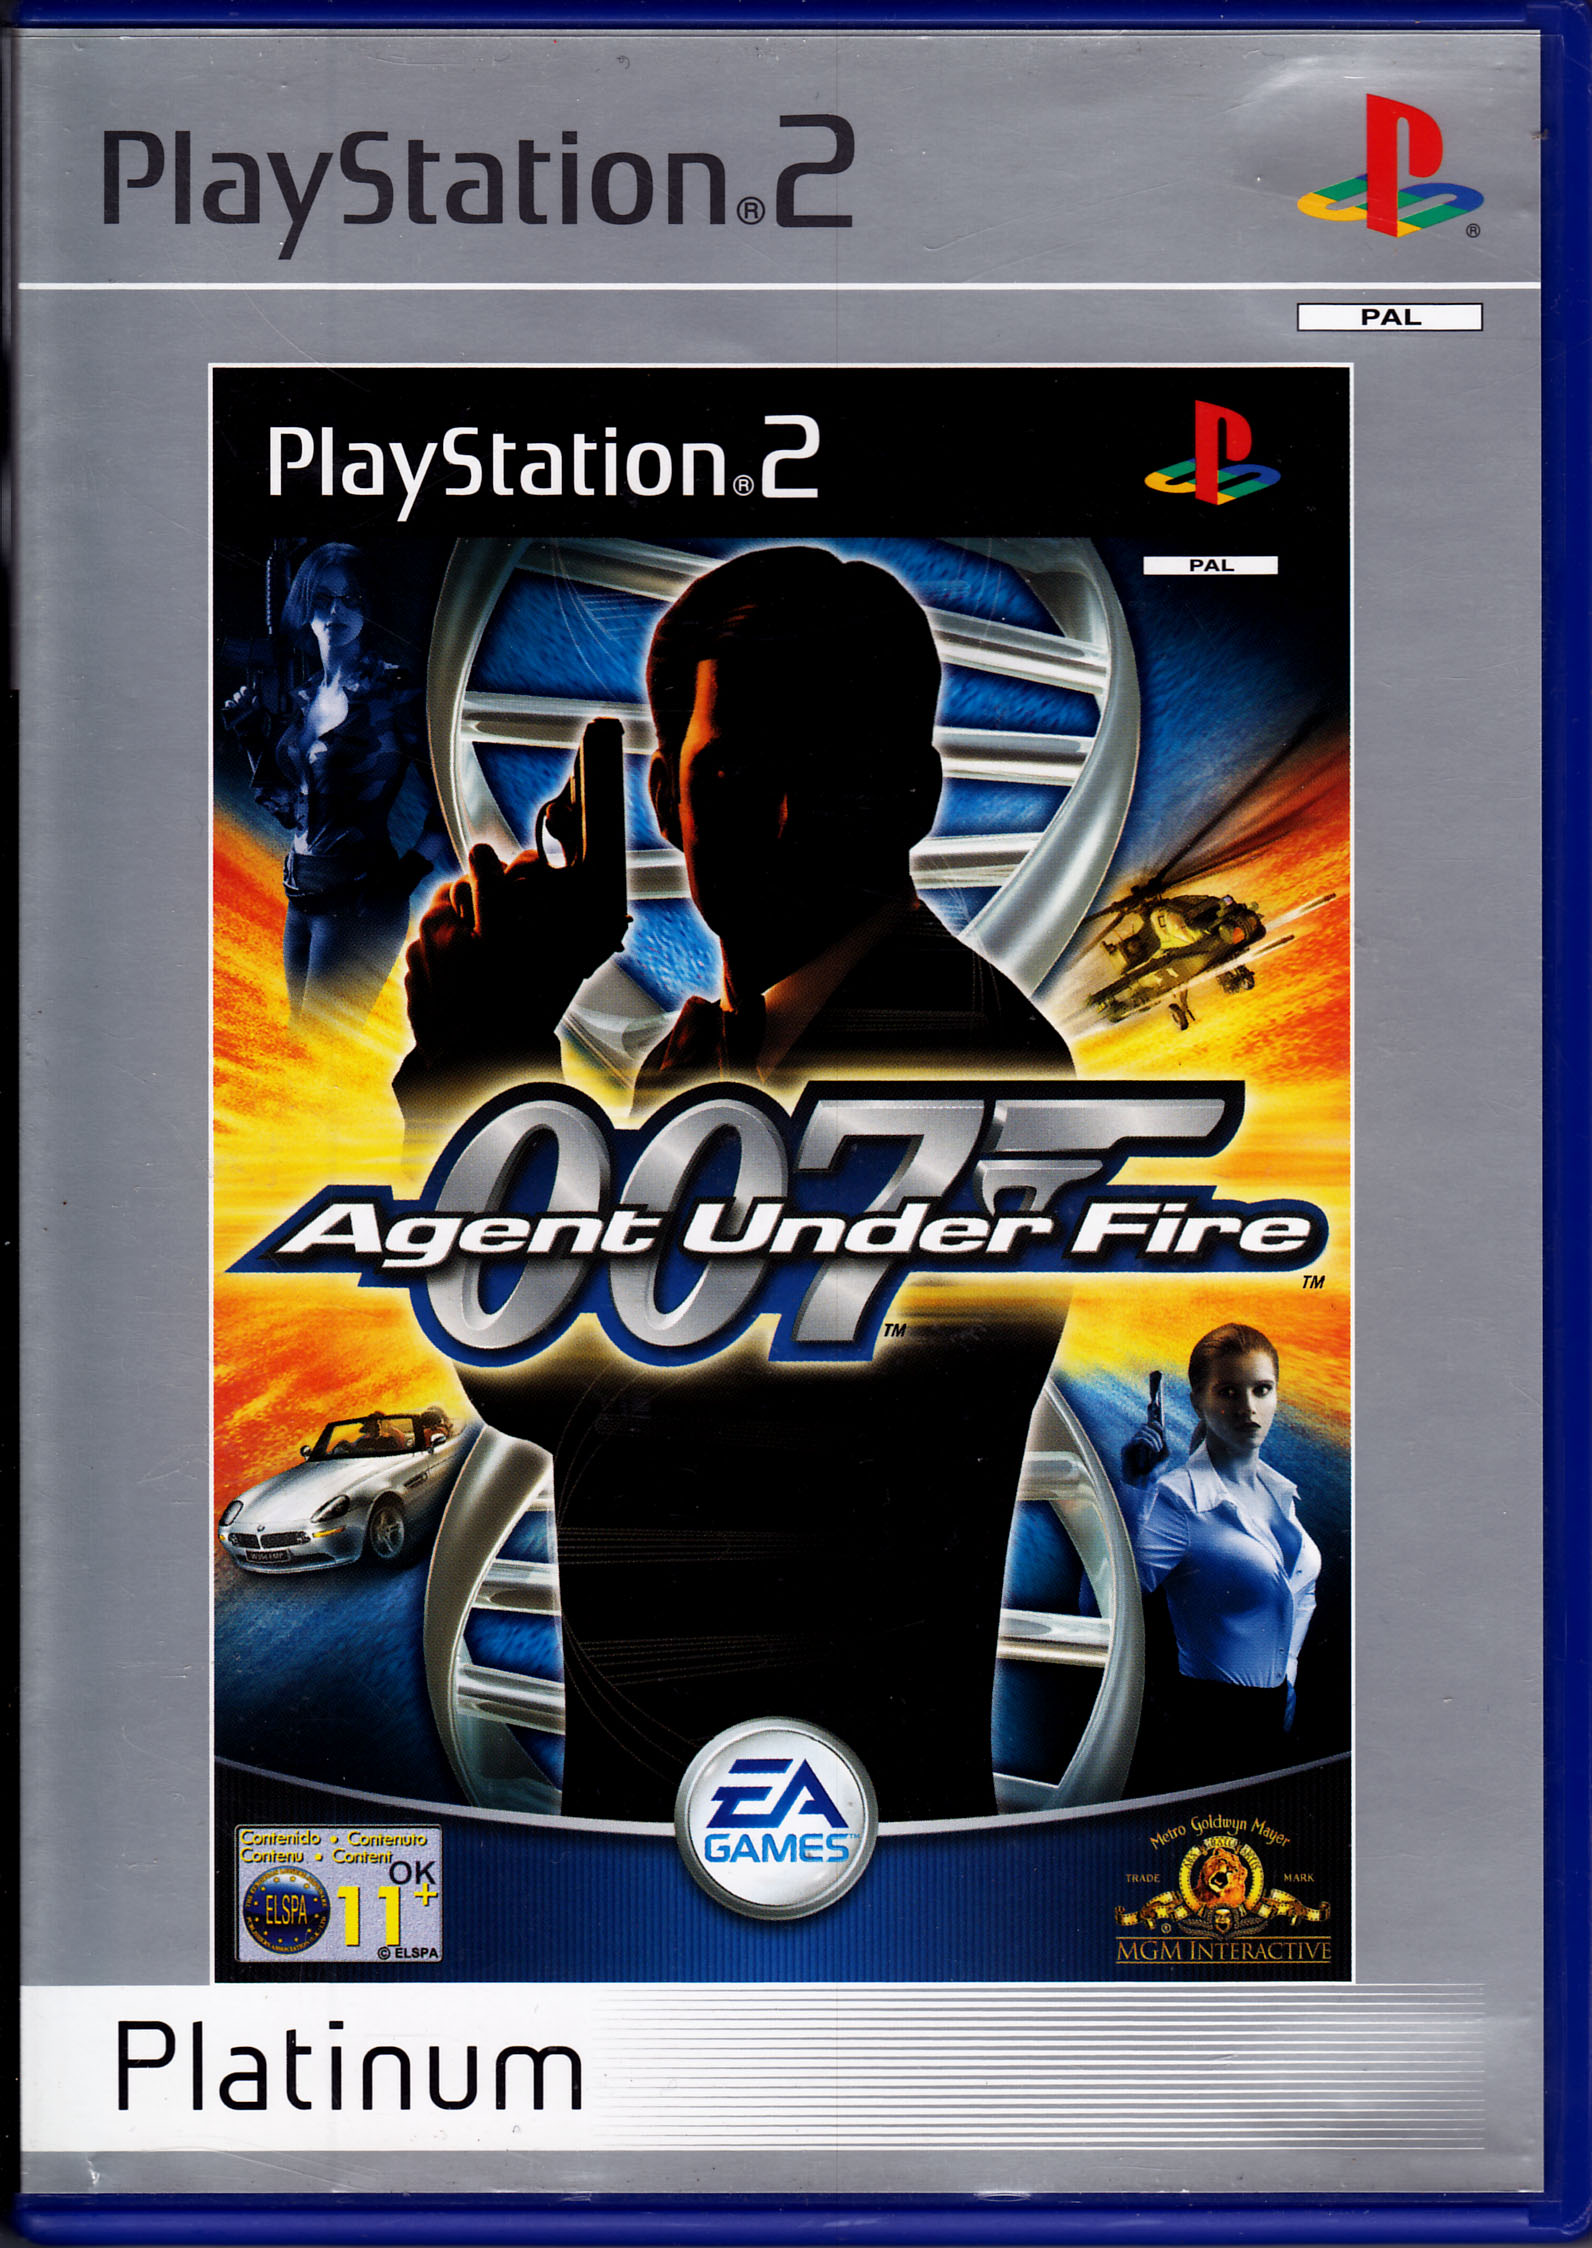 New 007 Game For Ps3 : Consoles playstation games